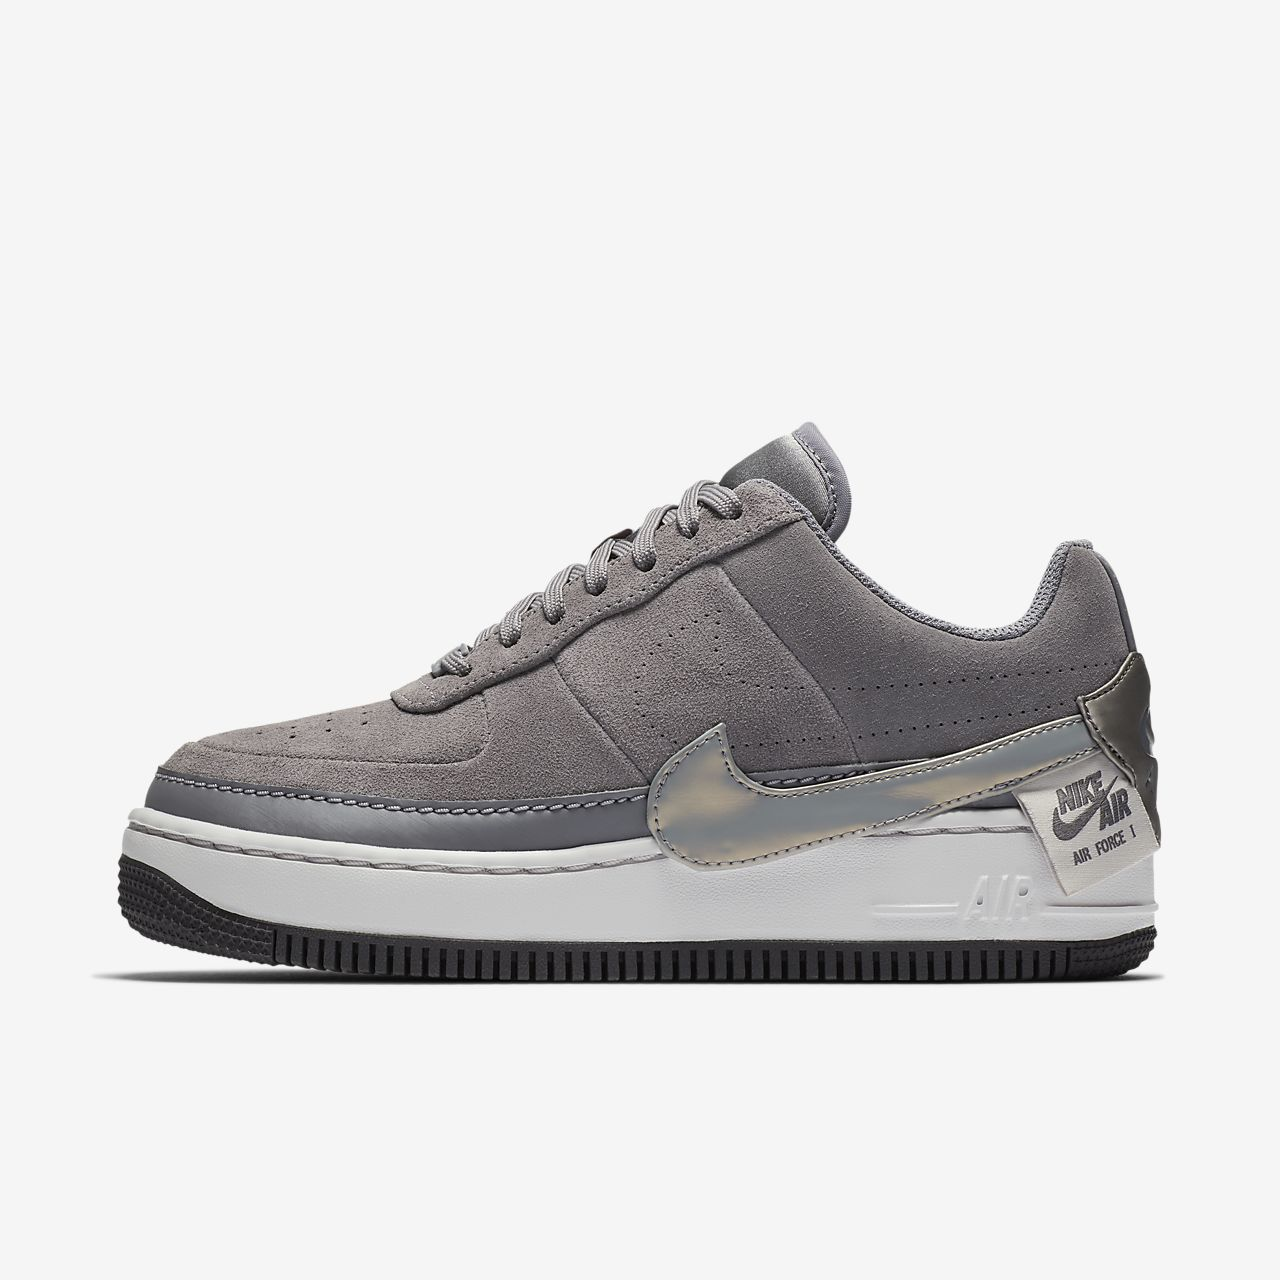 new style 604c8 745b3 Chaussure Nike Air Force 1 Jester pour Femme